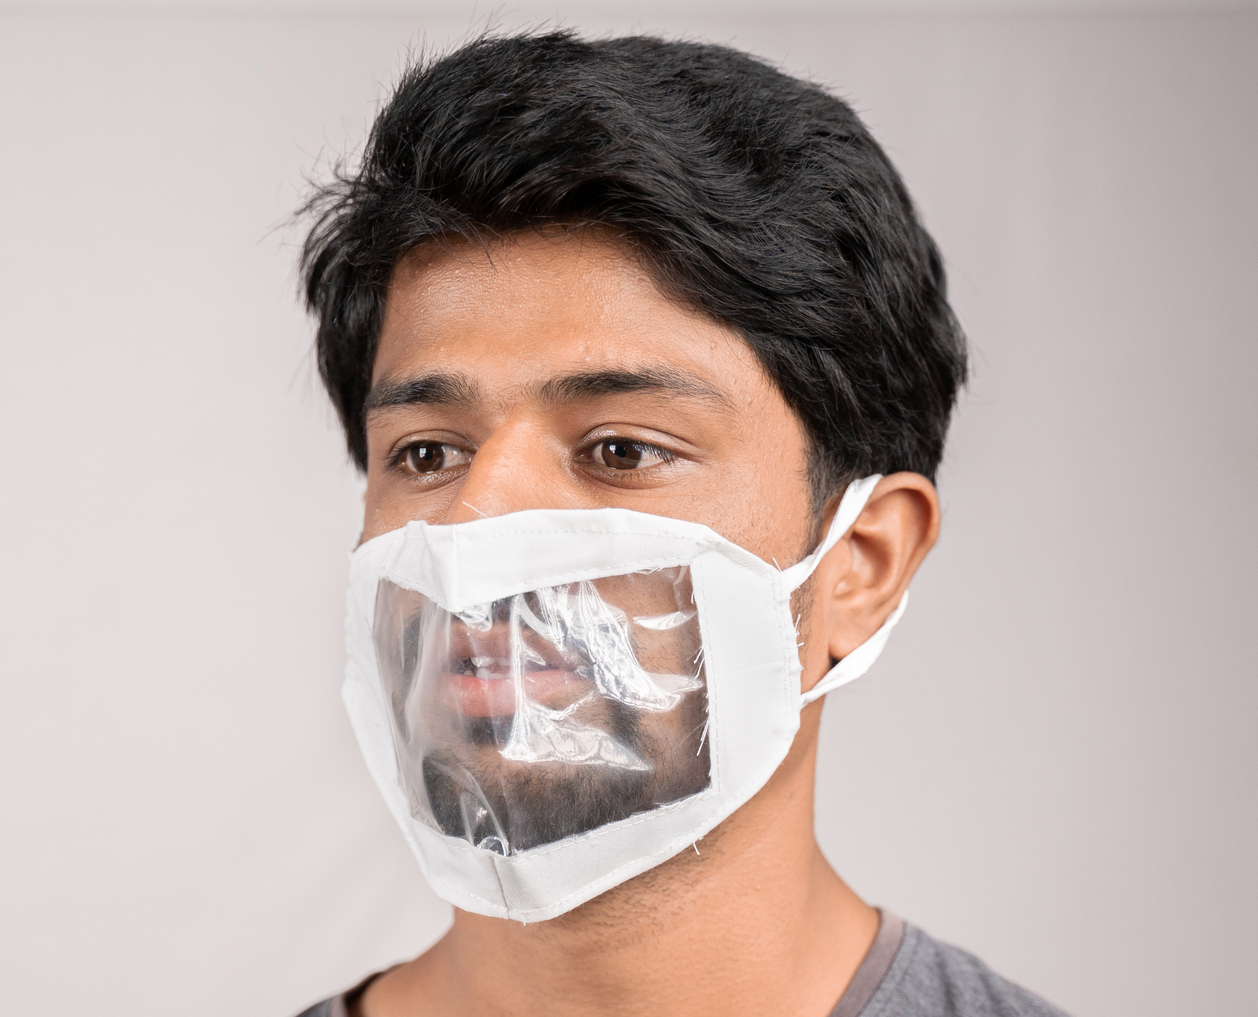 Man wears a fabric mask with a transparent plastic panel in front of his mouth.